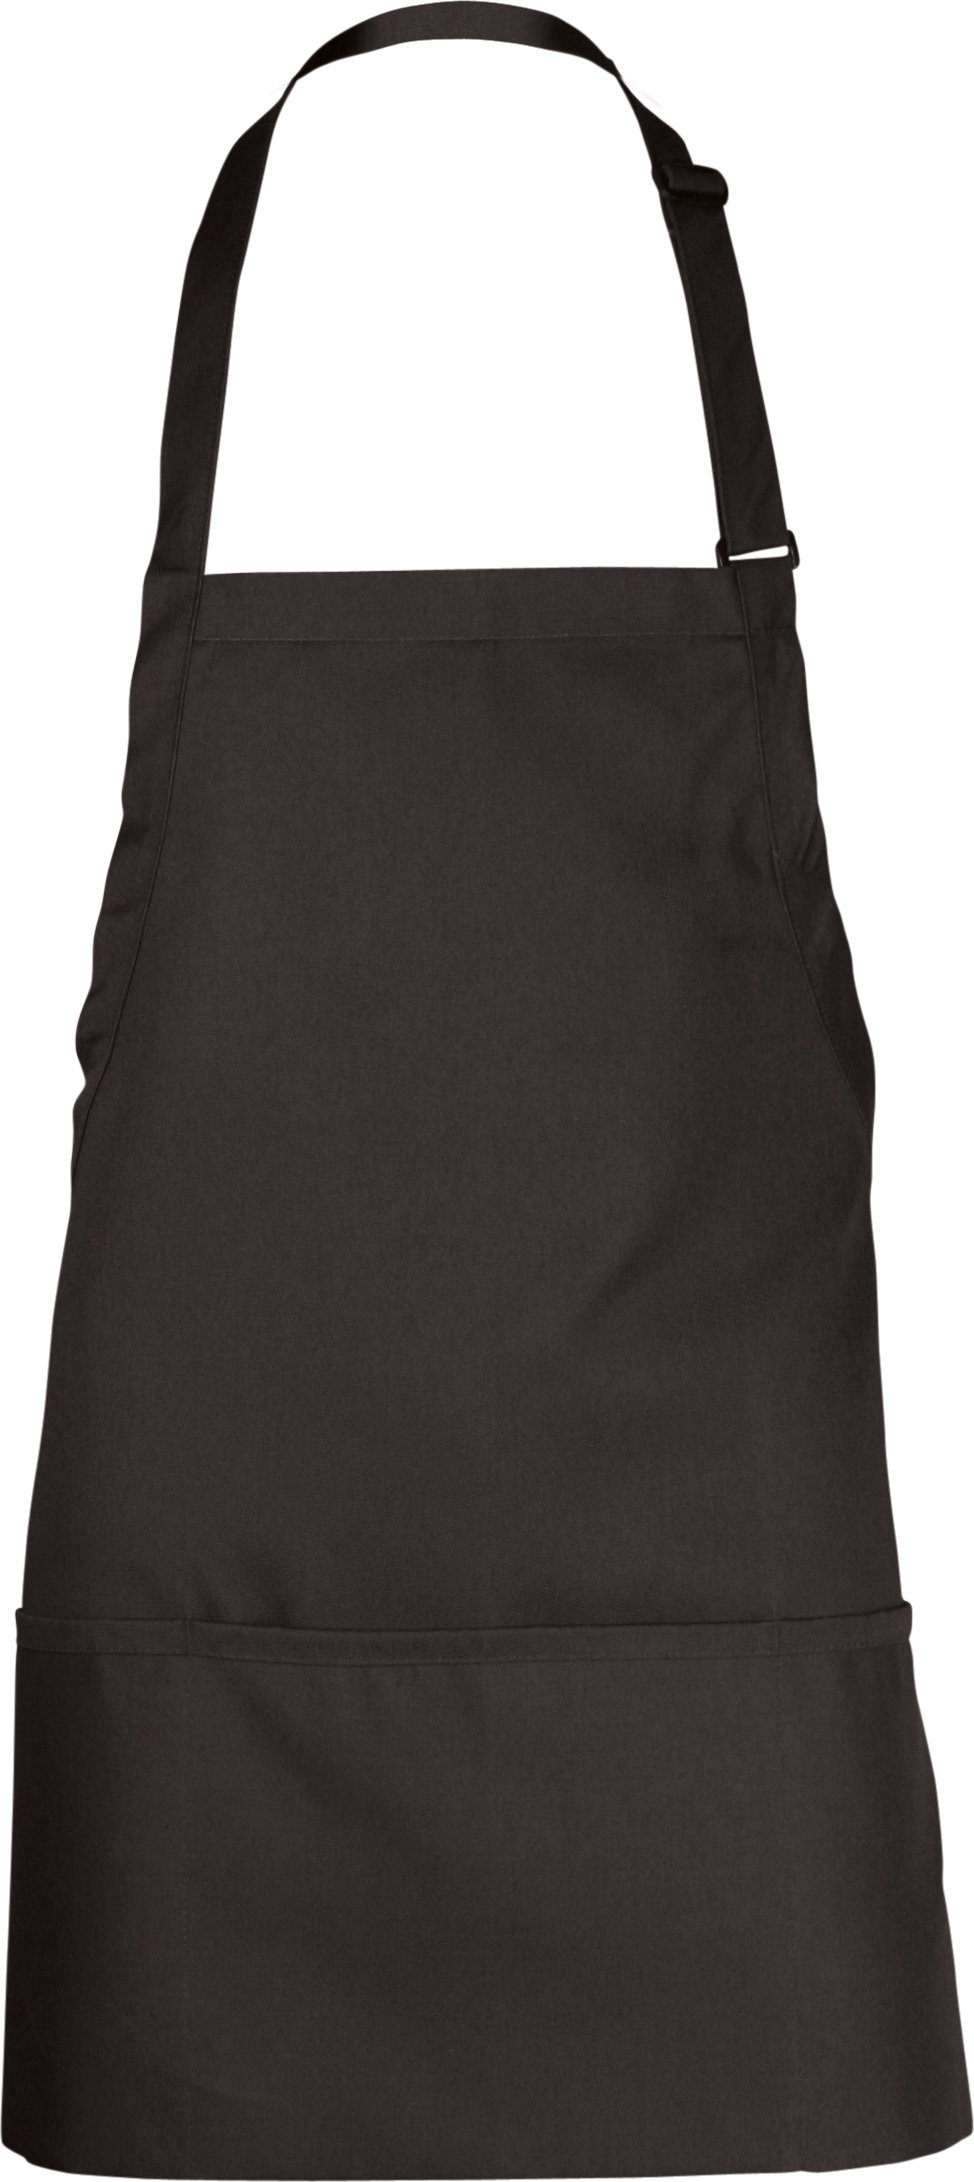 Chef Works Men's Three Pocket Apron, Black, 24-Inch Length by 28-Inch Width